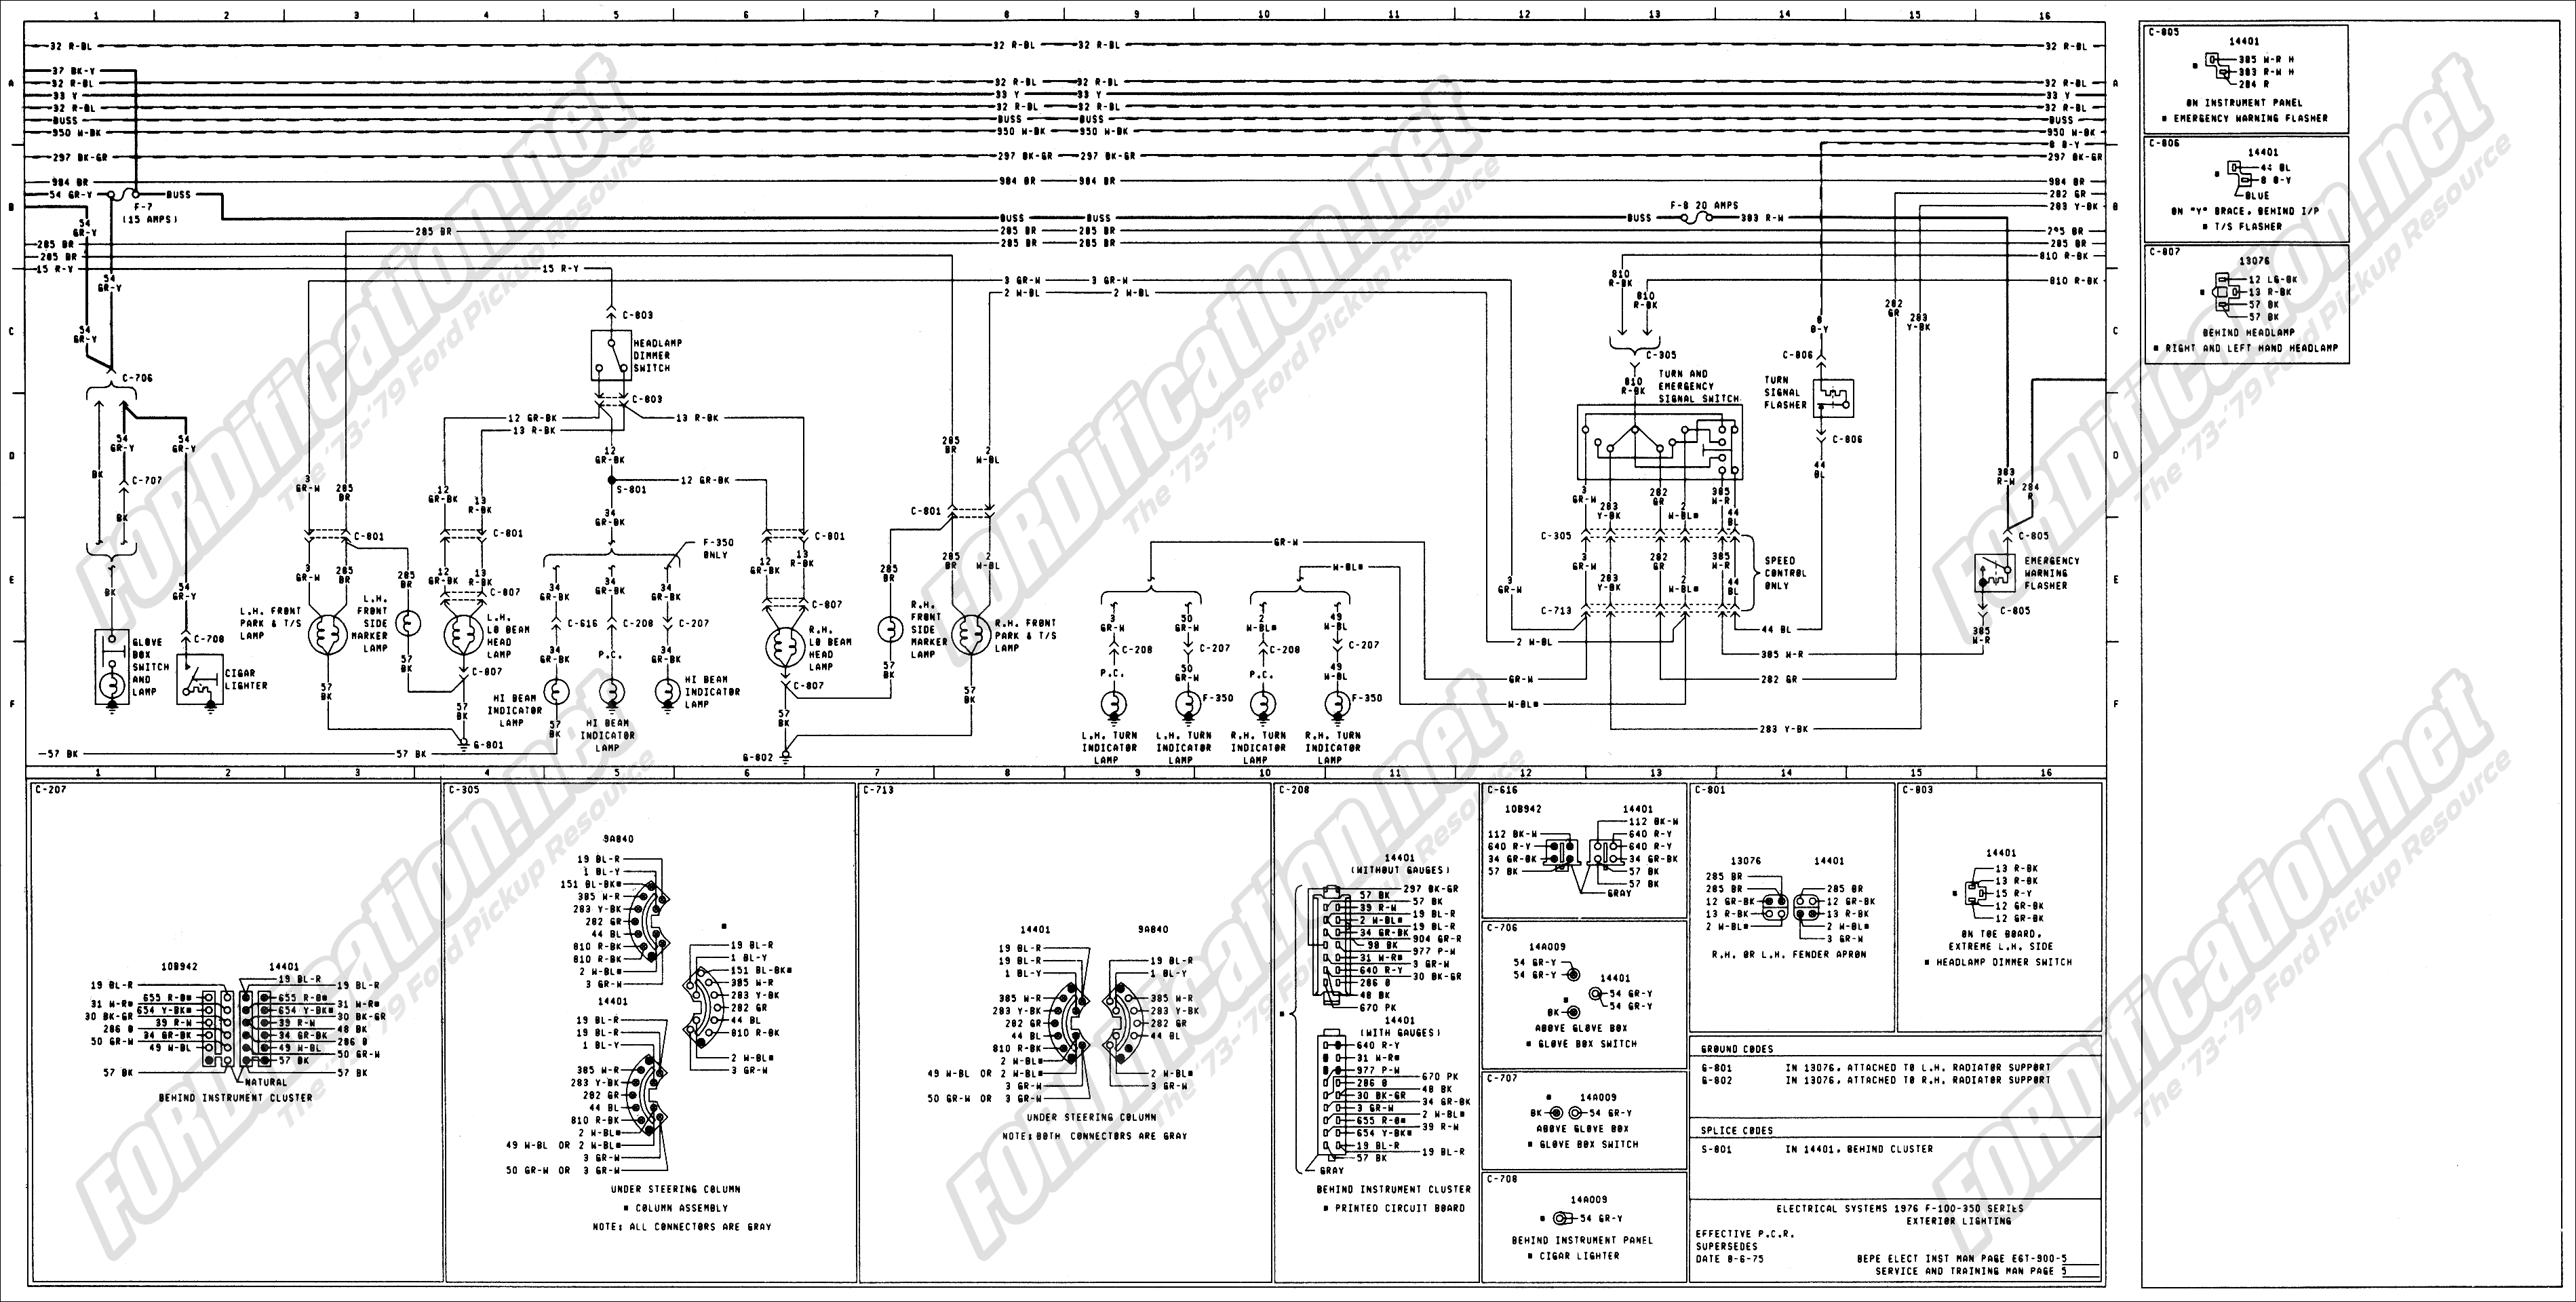 wiring_76master_5of9 1973 1979 ford truck wiring diagrams & schematics fordification net ford ignition wiring diagram at nearapp.co